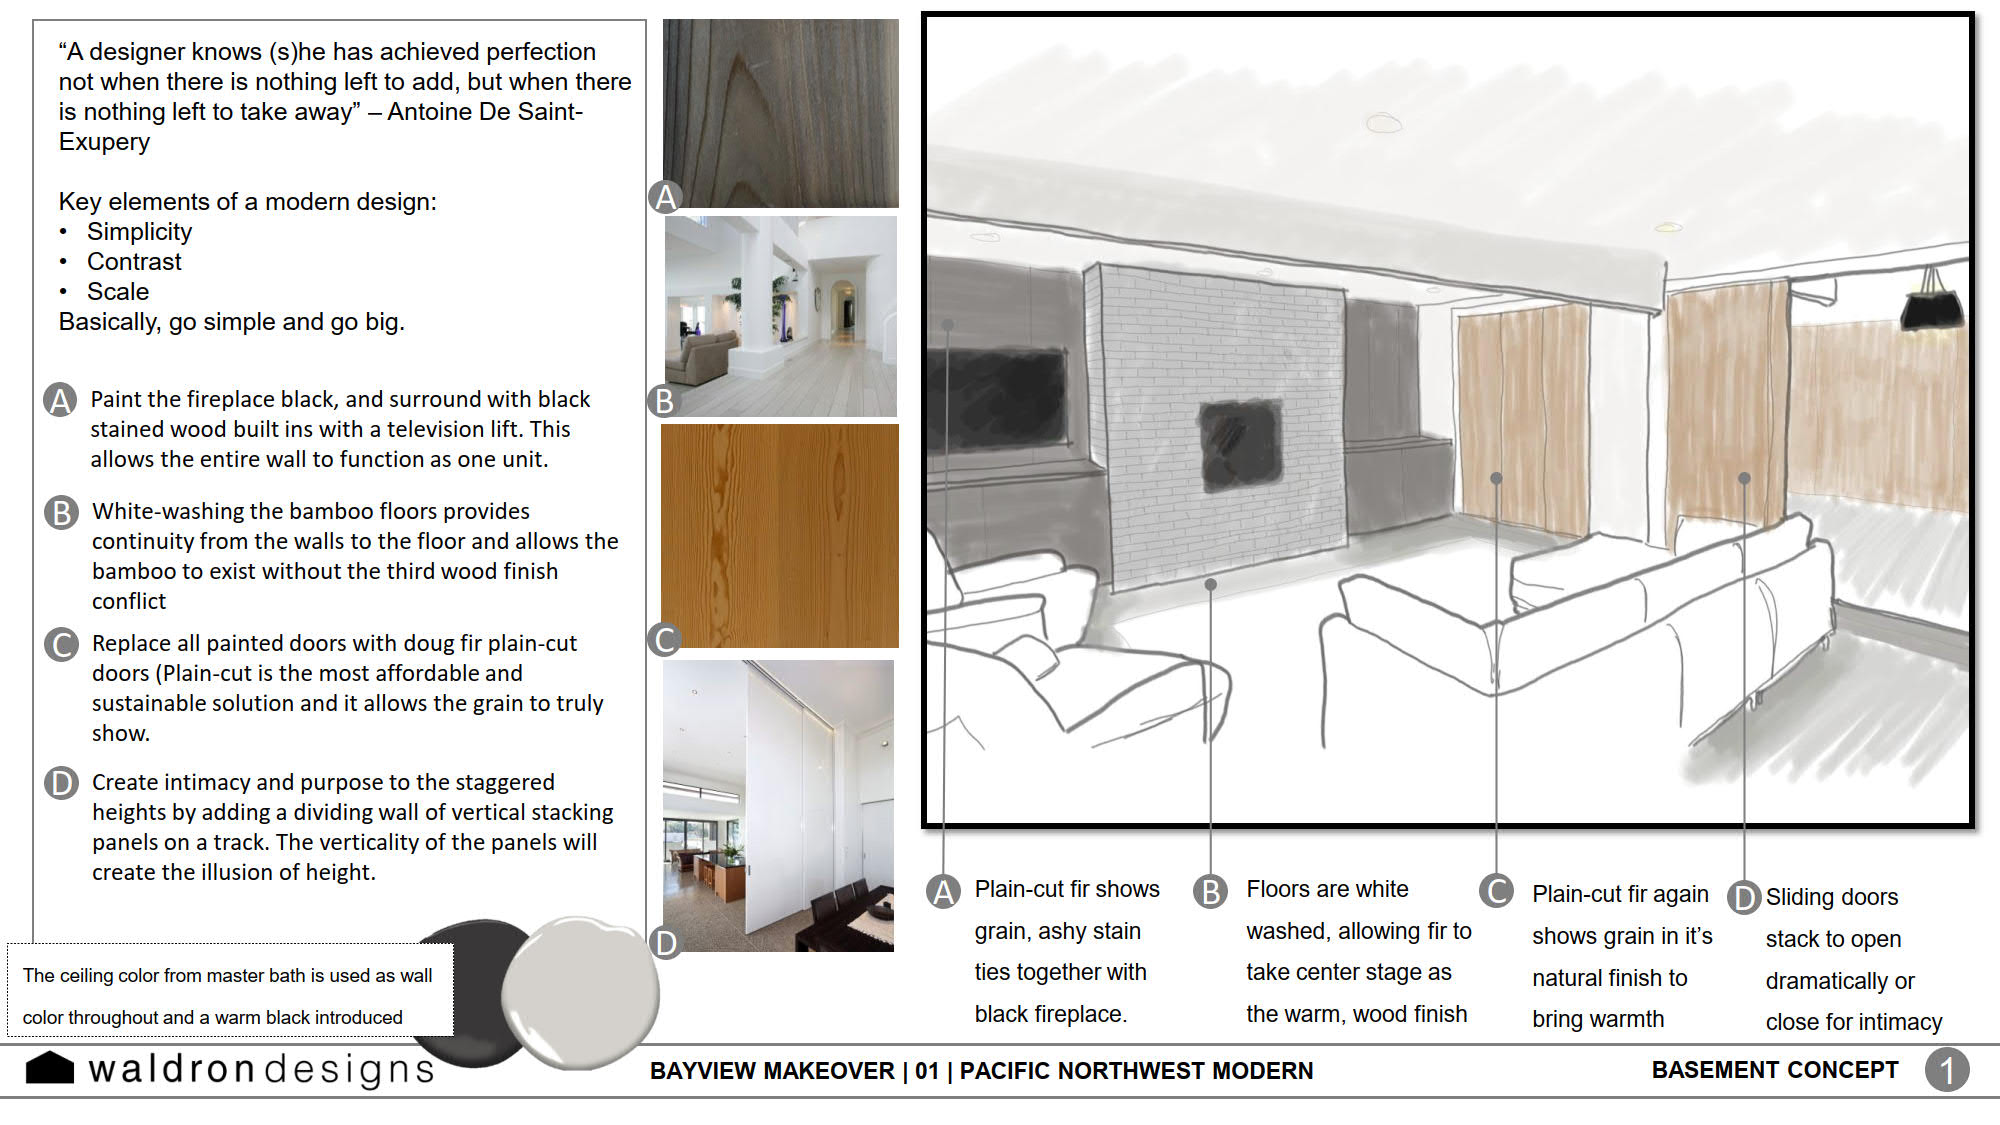 schematic-presentation-interior-design-basement-remodel-waldron-designs-vashon-island.jpg